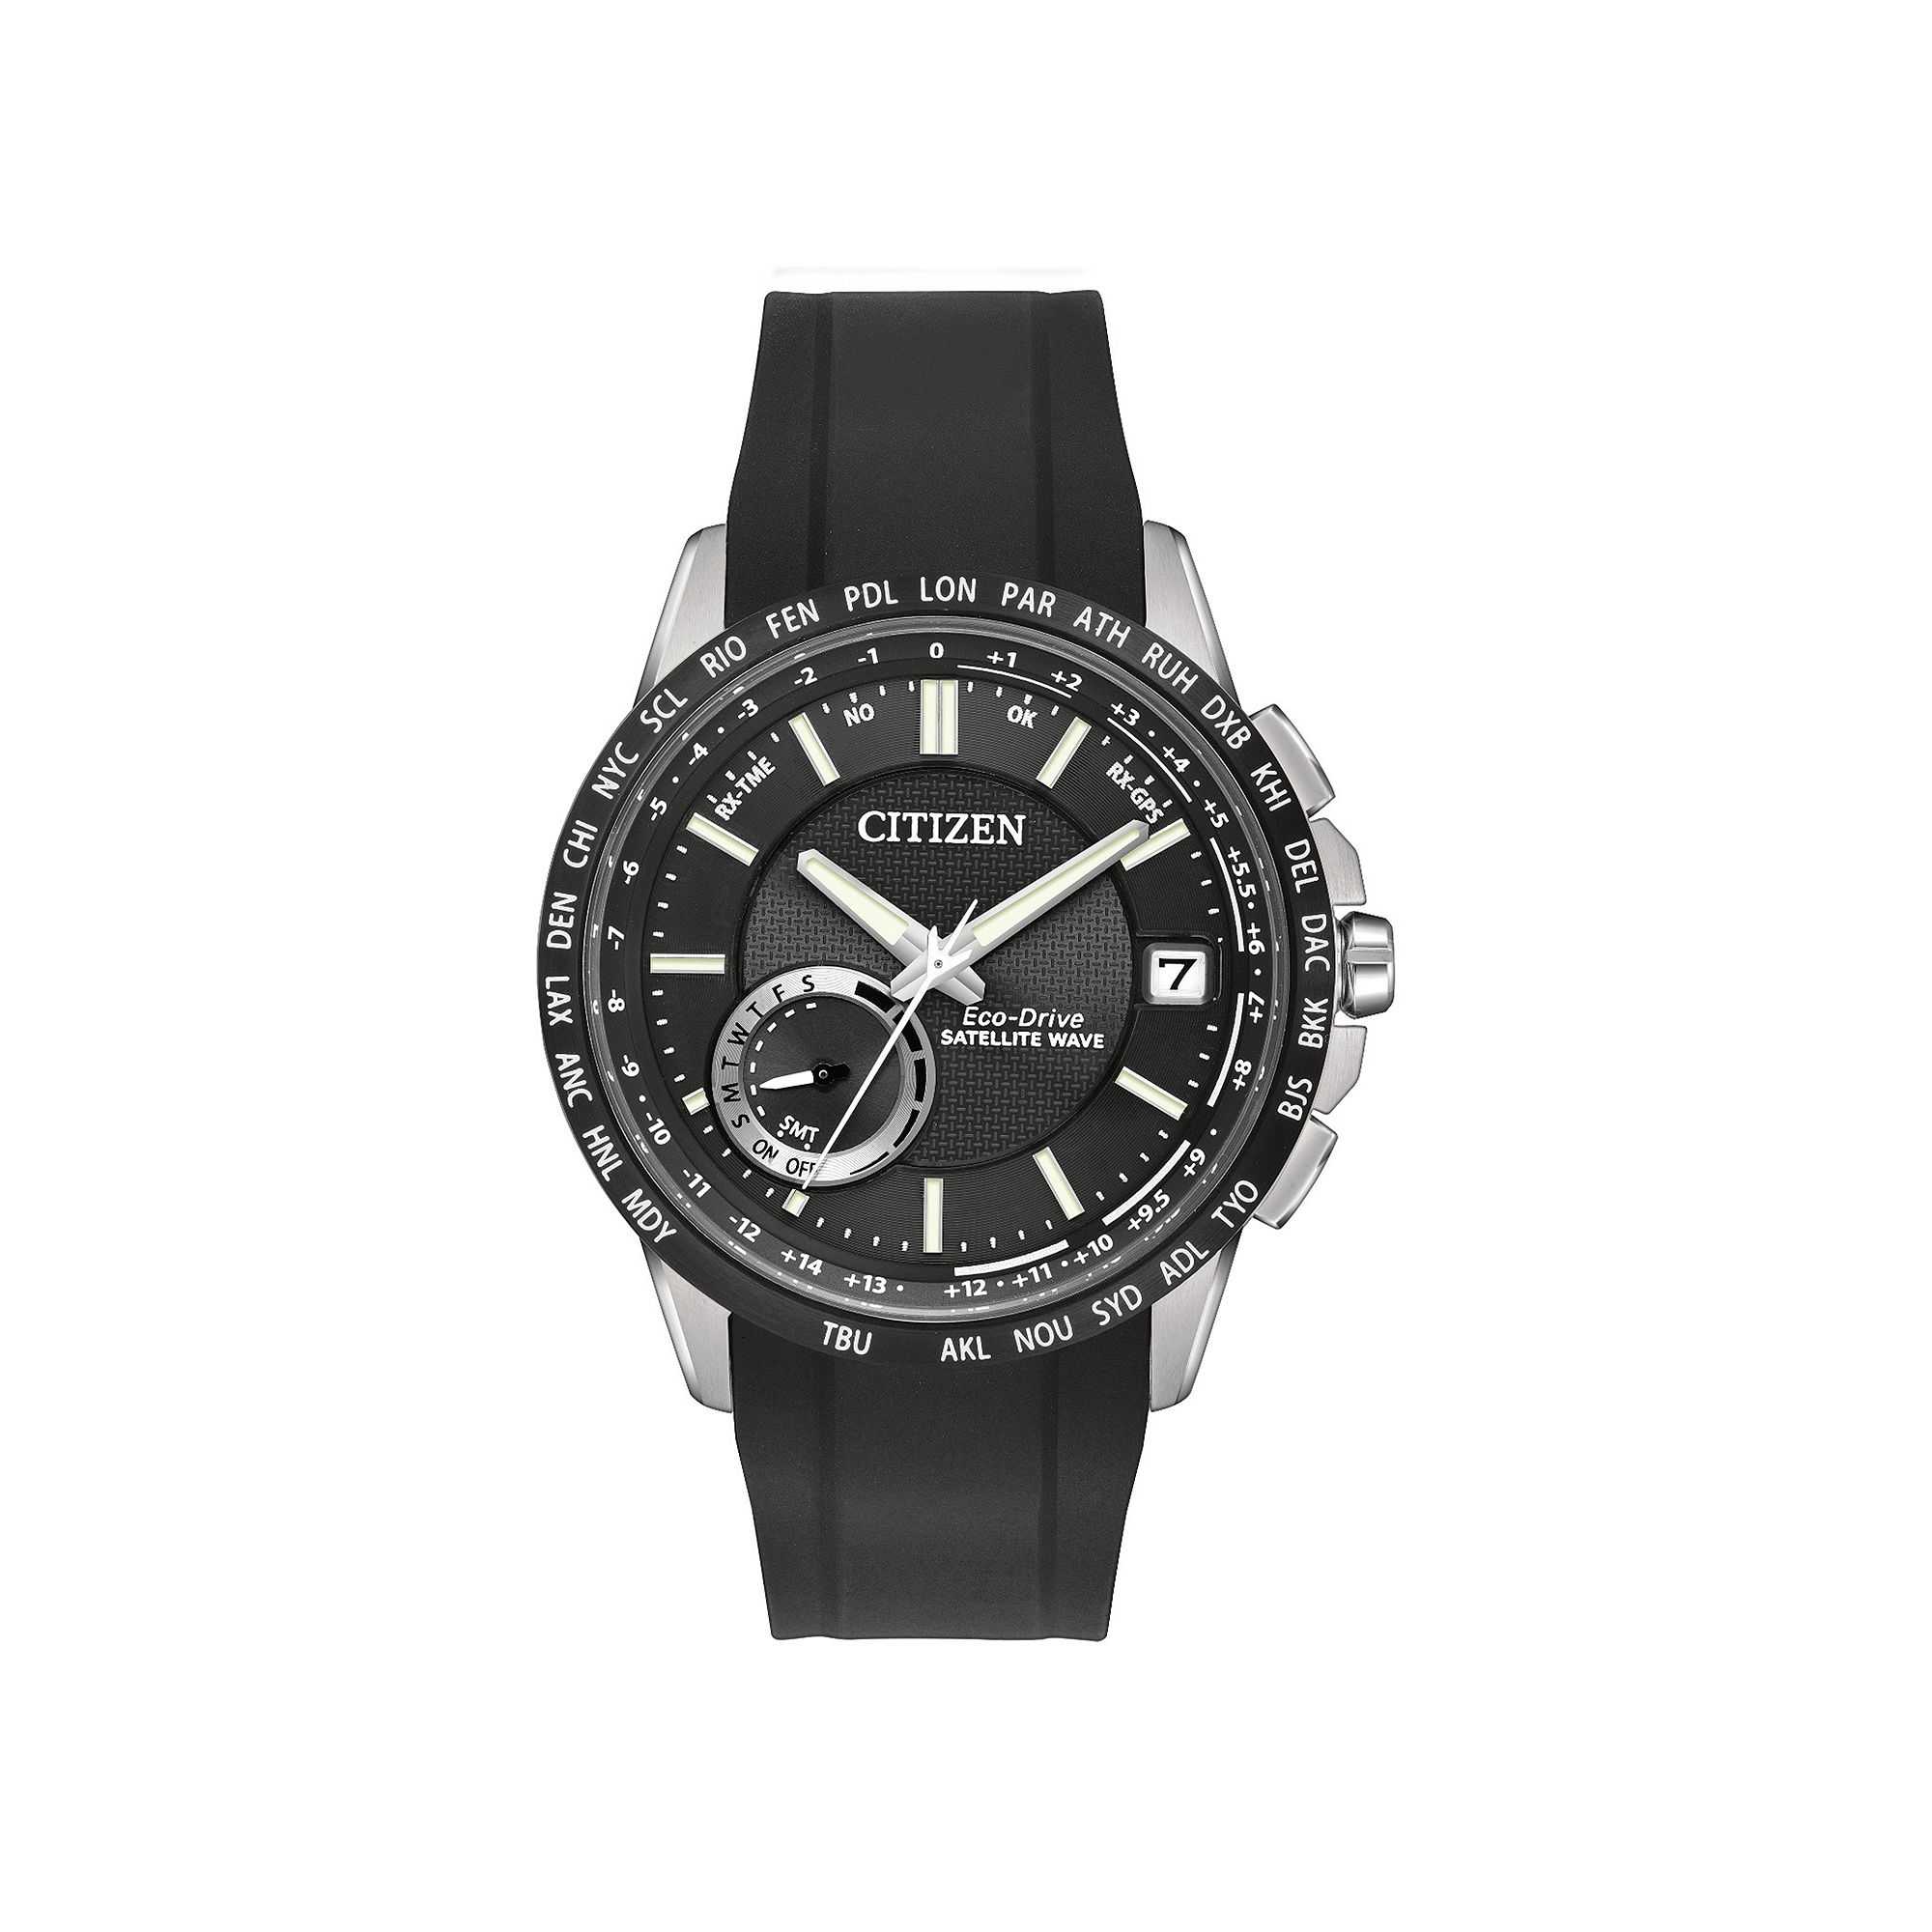 Citizen Eco-Drive Satellite Wave-World Time GPS Mens Watch CC3005-00E